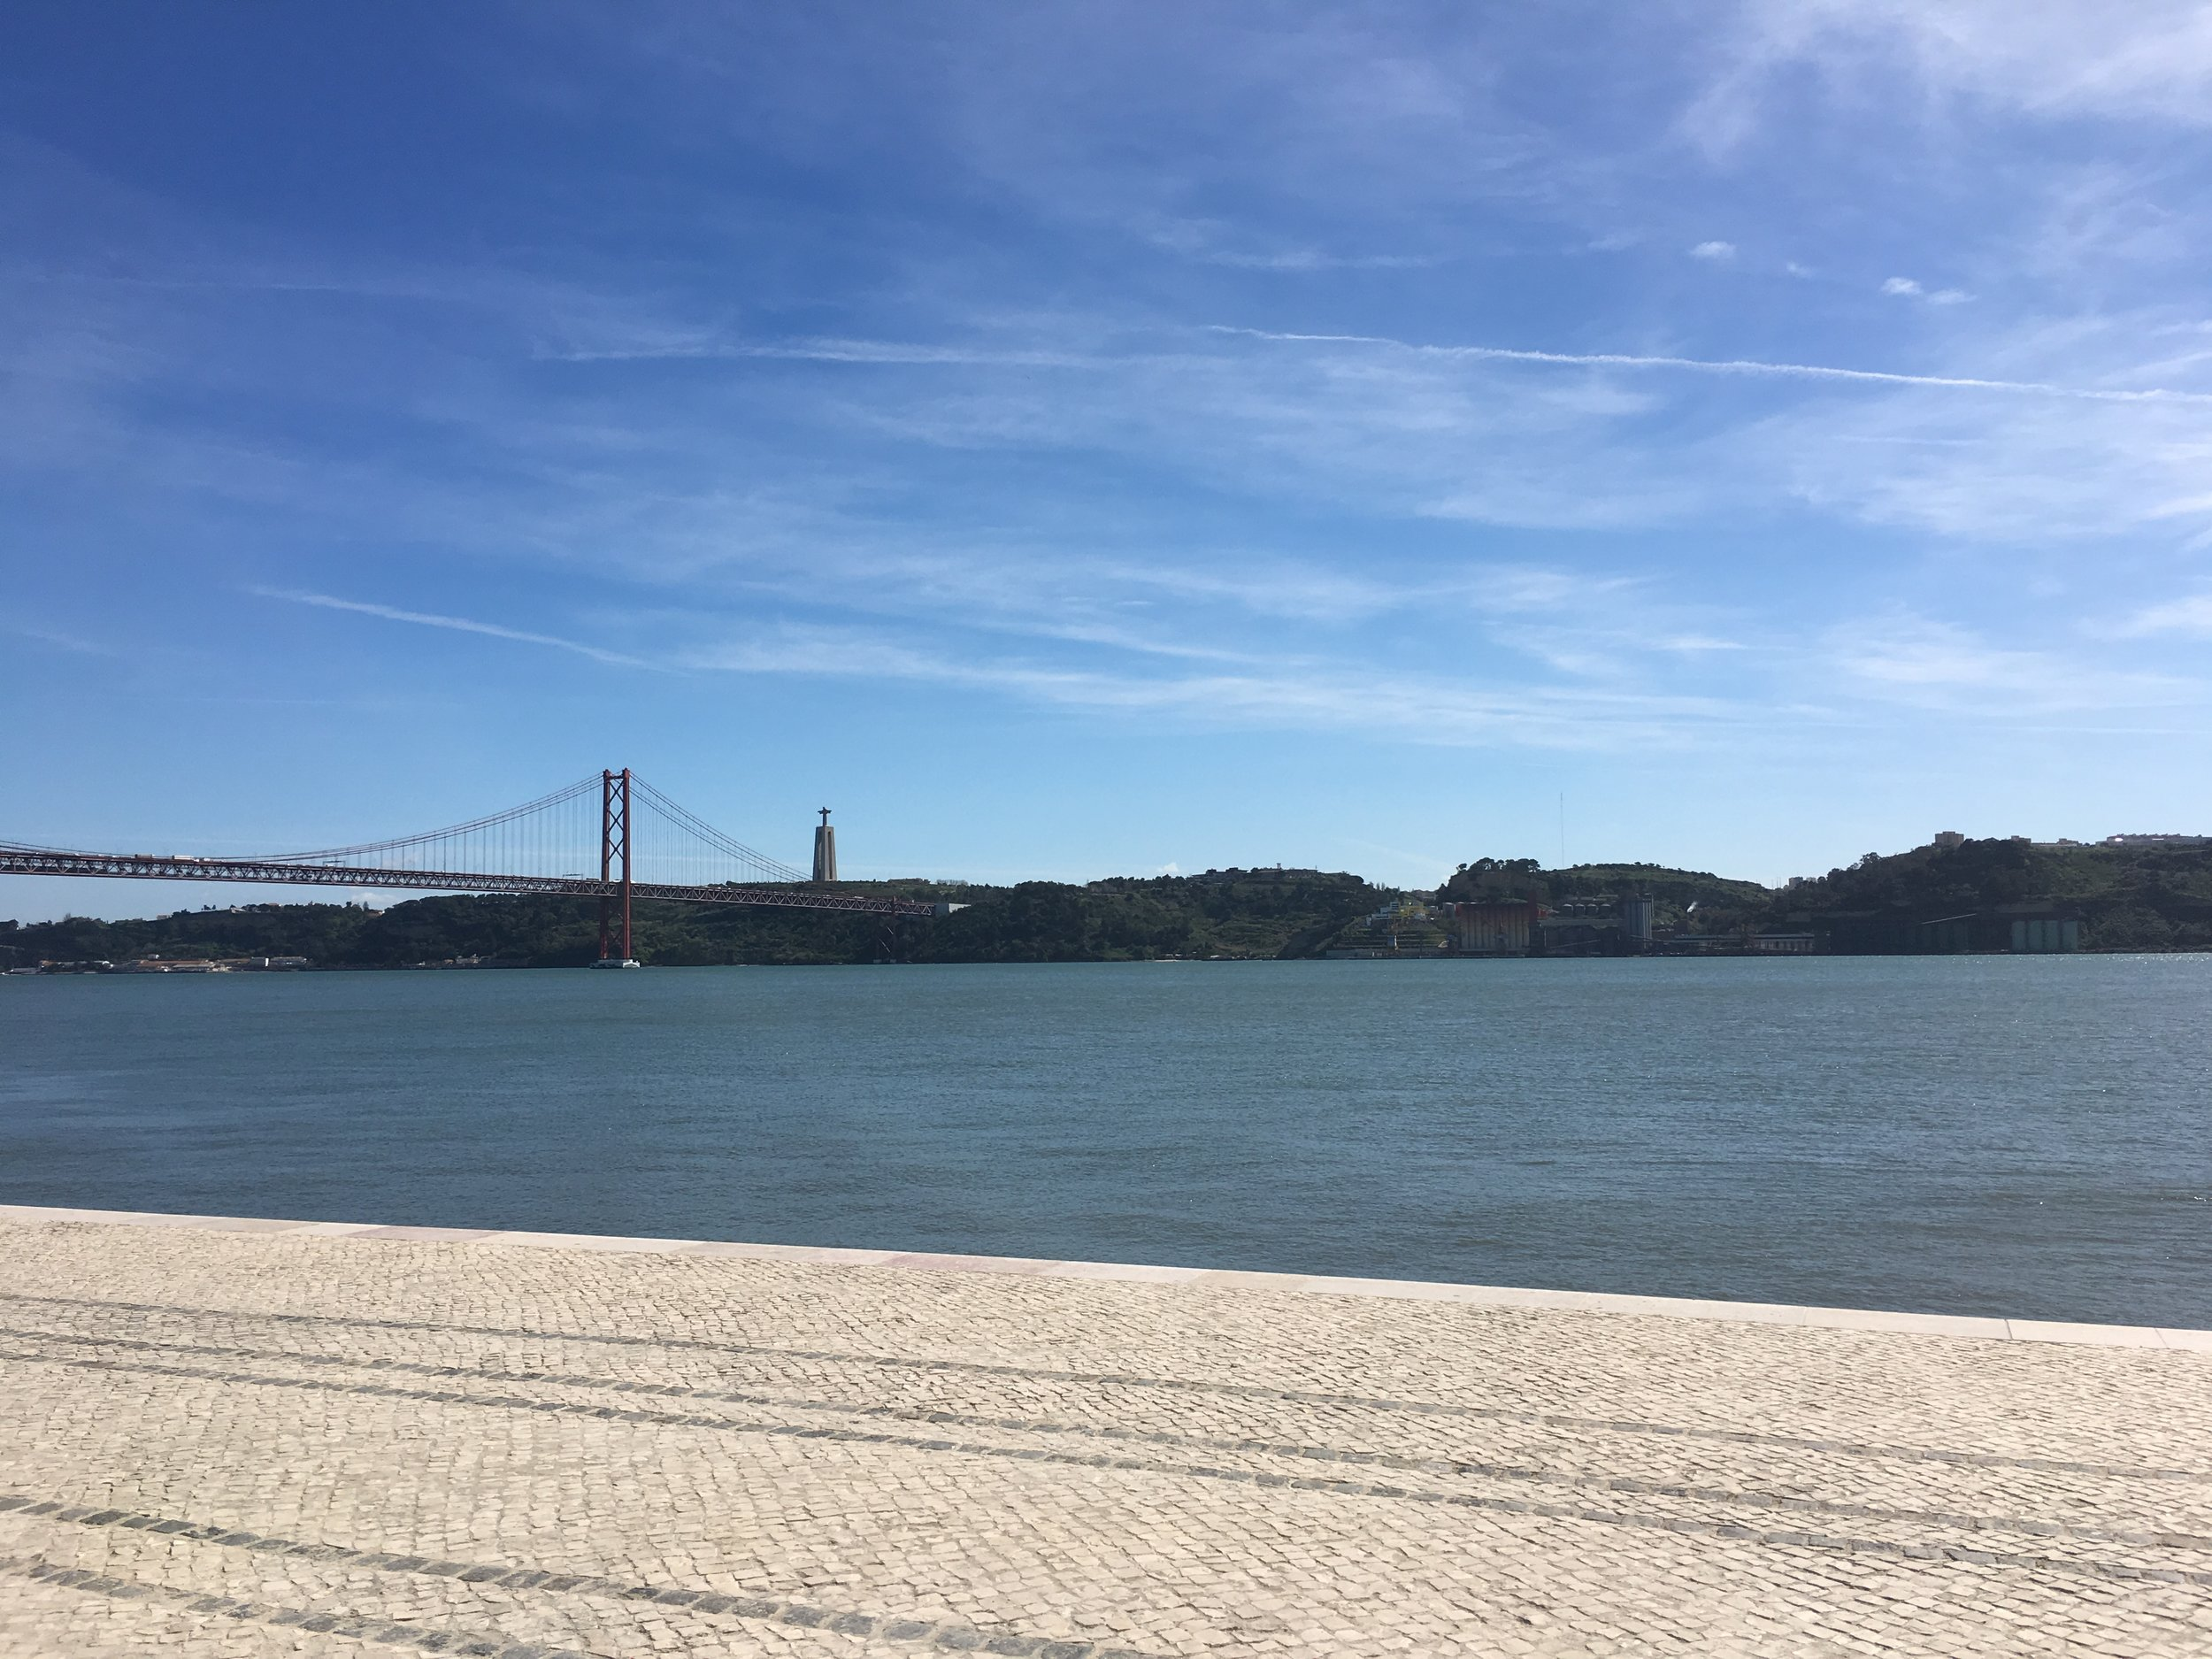 The Tagus river looking across the Ponte 25 de Abril suspension bridge to the statue of Cristo Rei